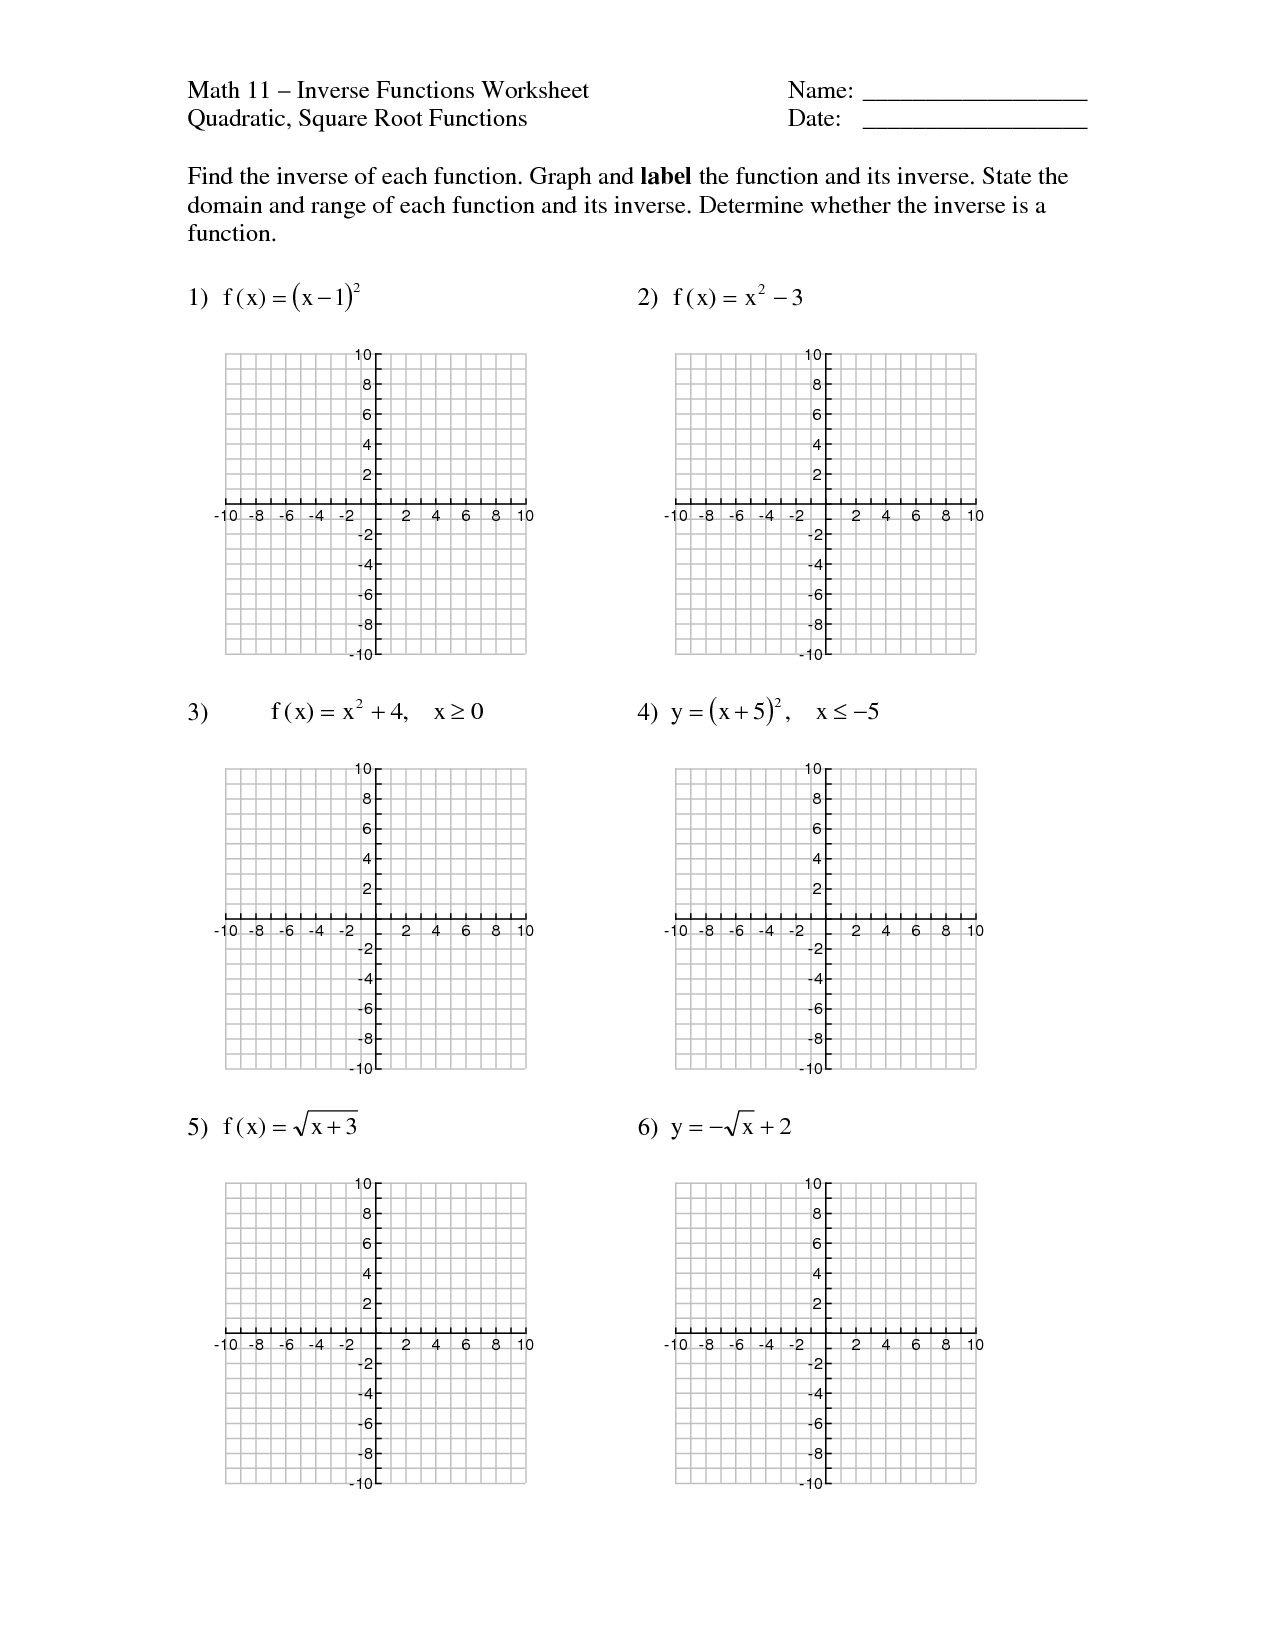 35 Inverse Of Linear Functions Worksheet Answers